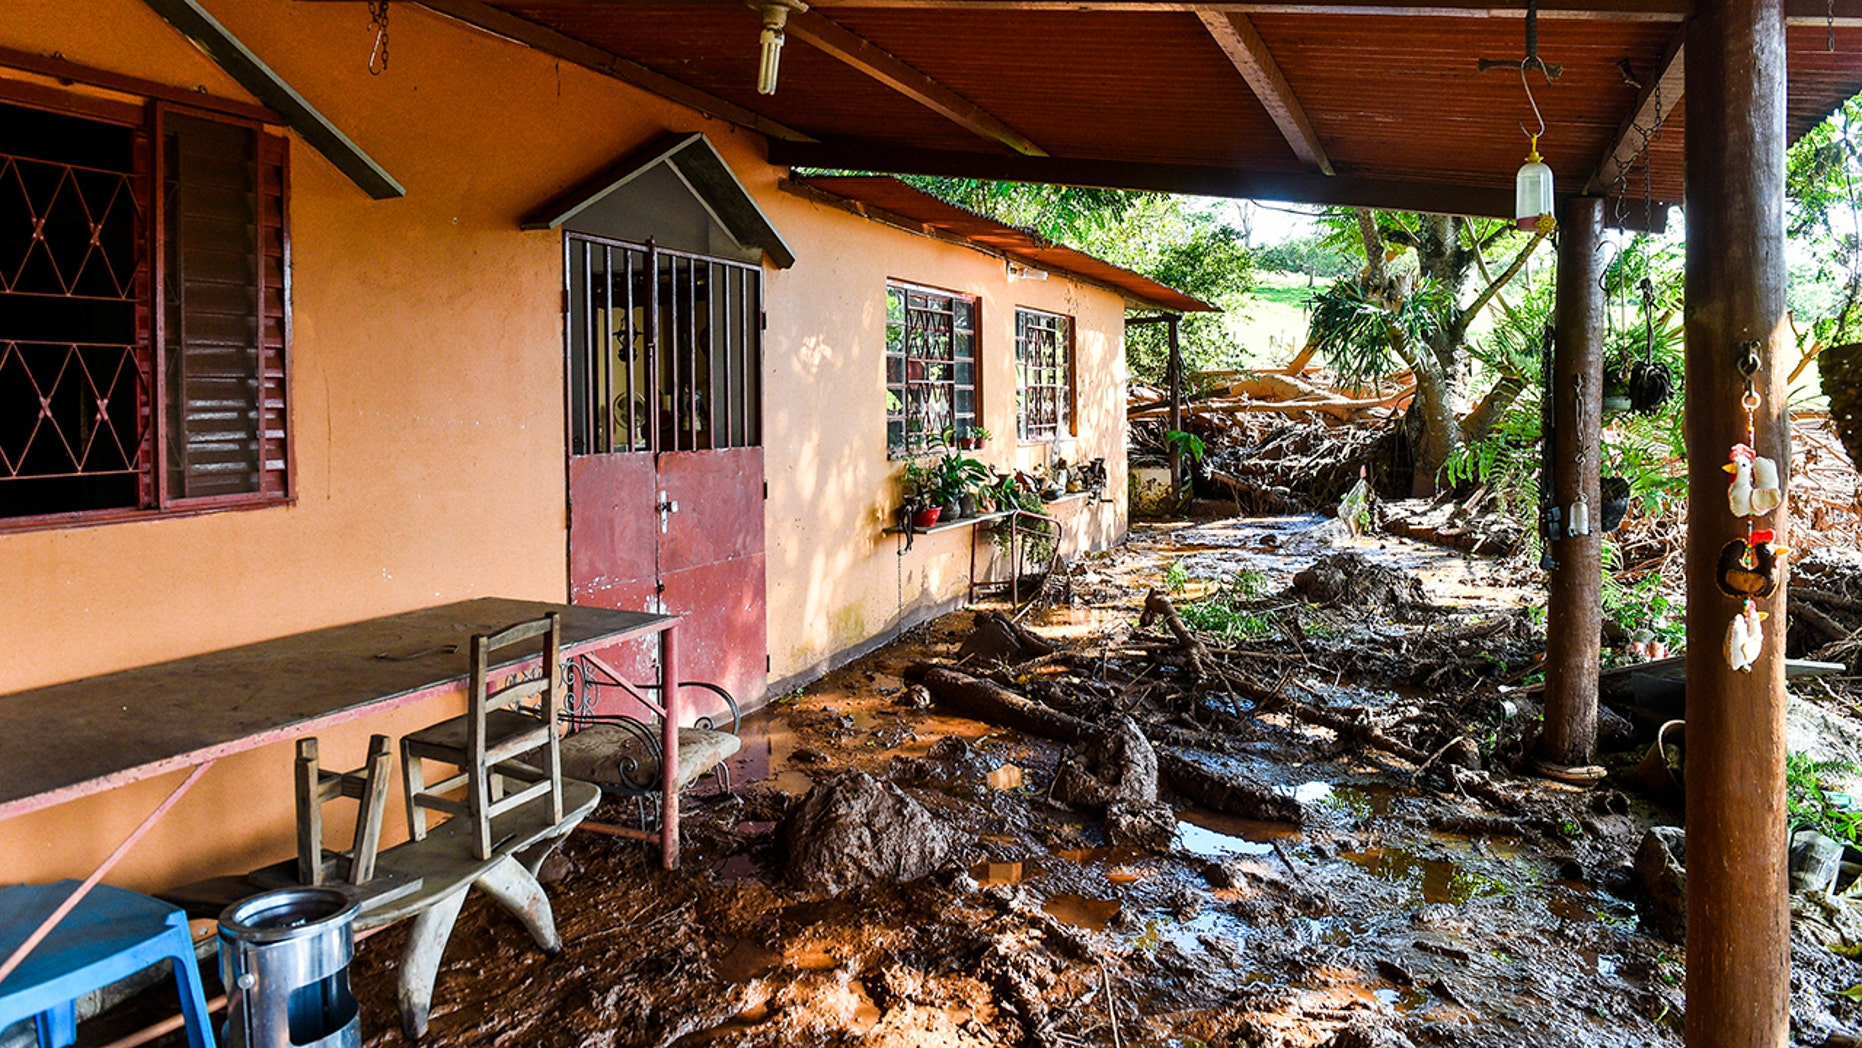 A house struck by the mud in southeastern Brazil on Jan.27, a day after the dam collapse. (Photo by Pedro Vilela / Getty Images)